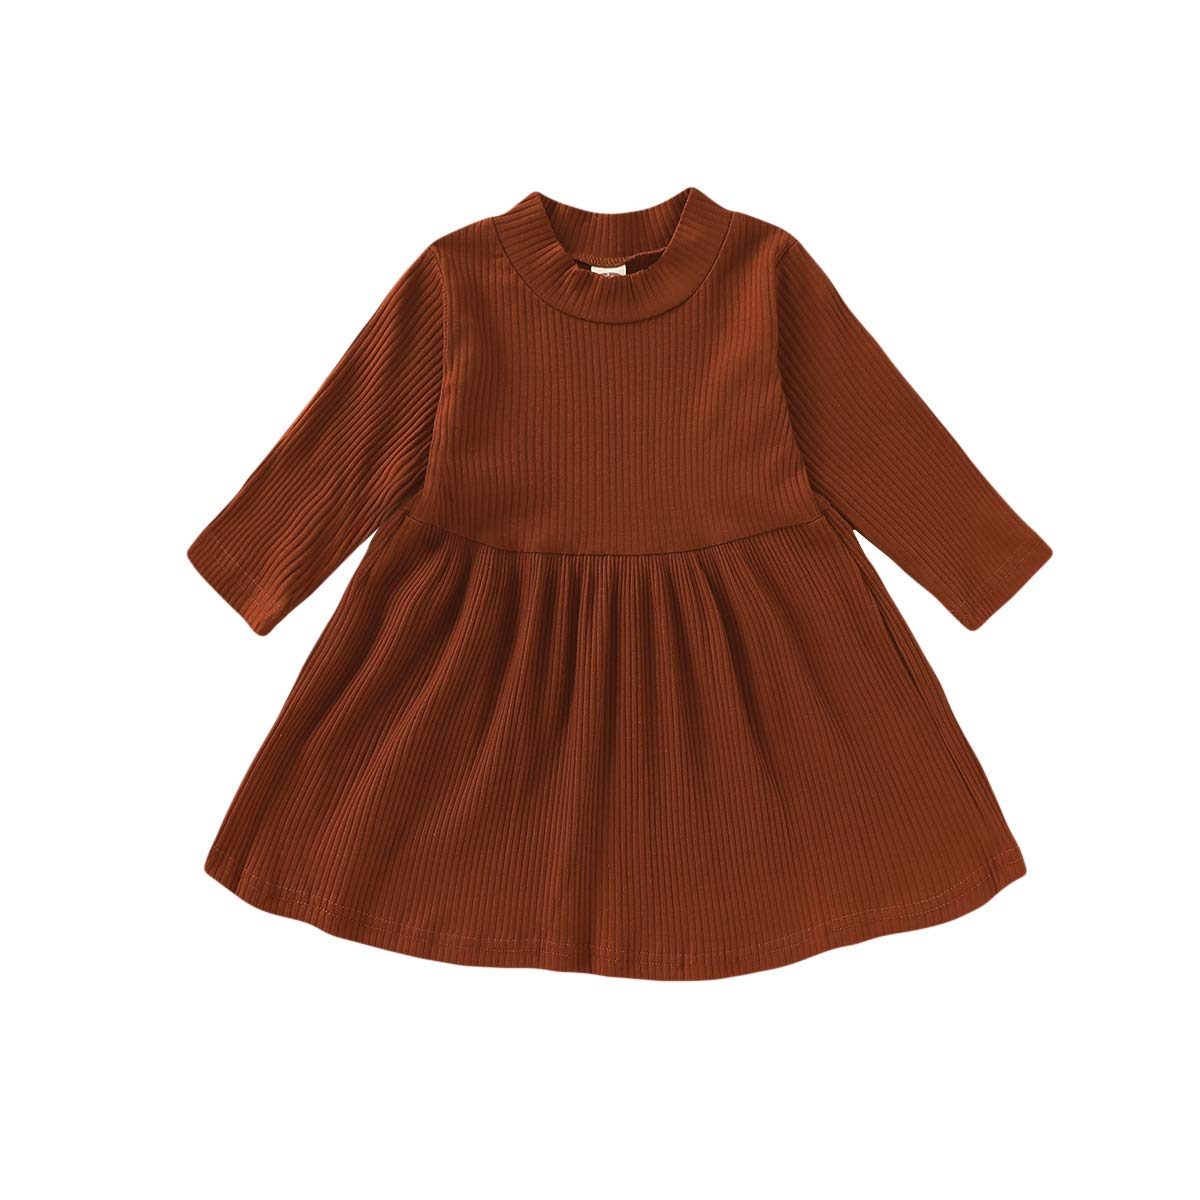 Viworld Toddler Kids Baby Girl Solid Dress Ruffle Long Sleeve Tops Cotton